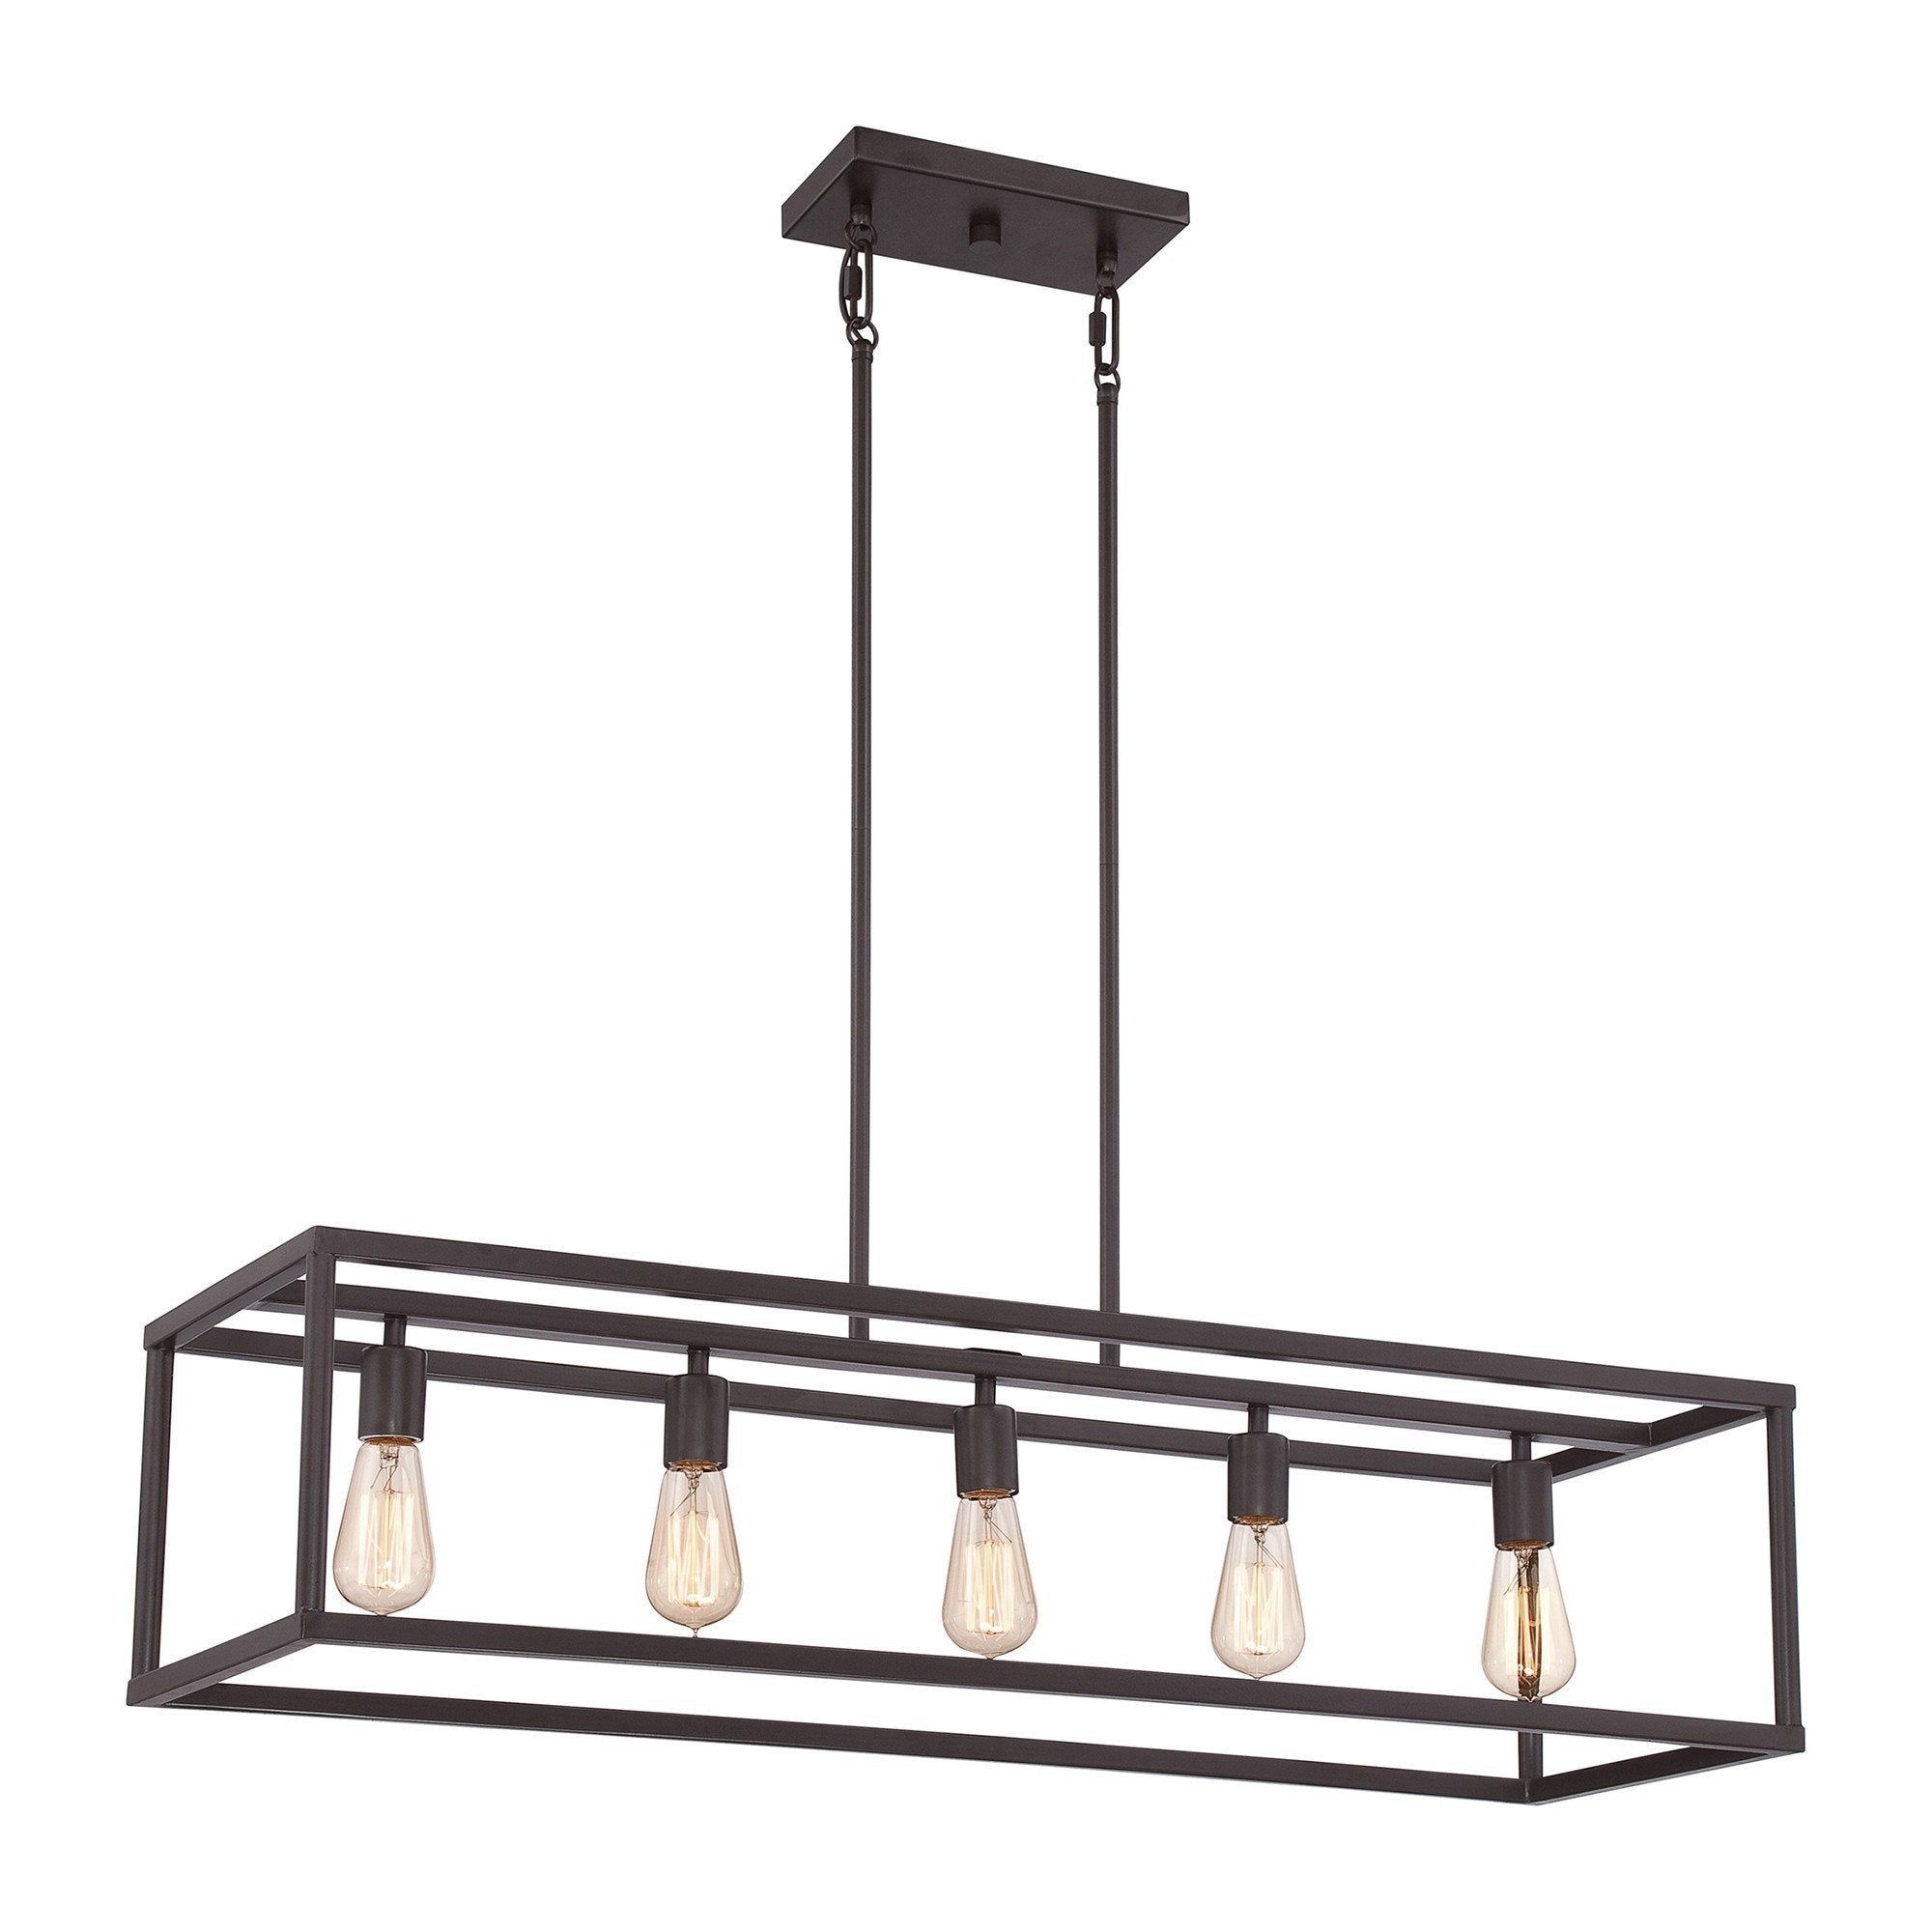 Quoizel New Harbor Island Chandelier - London Lighting - 1